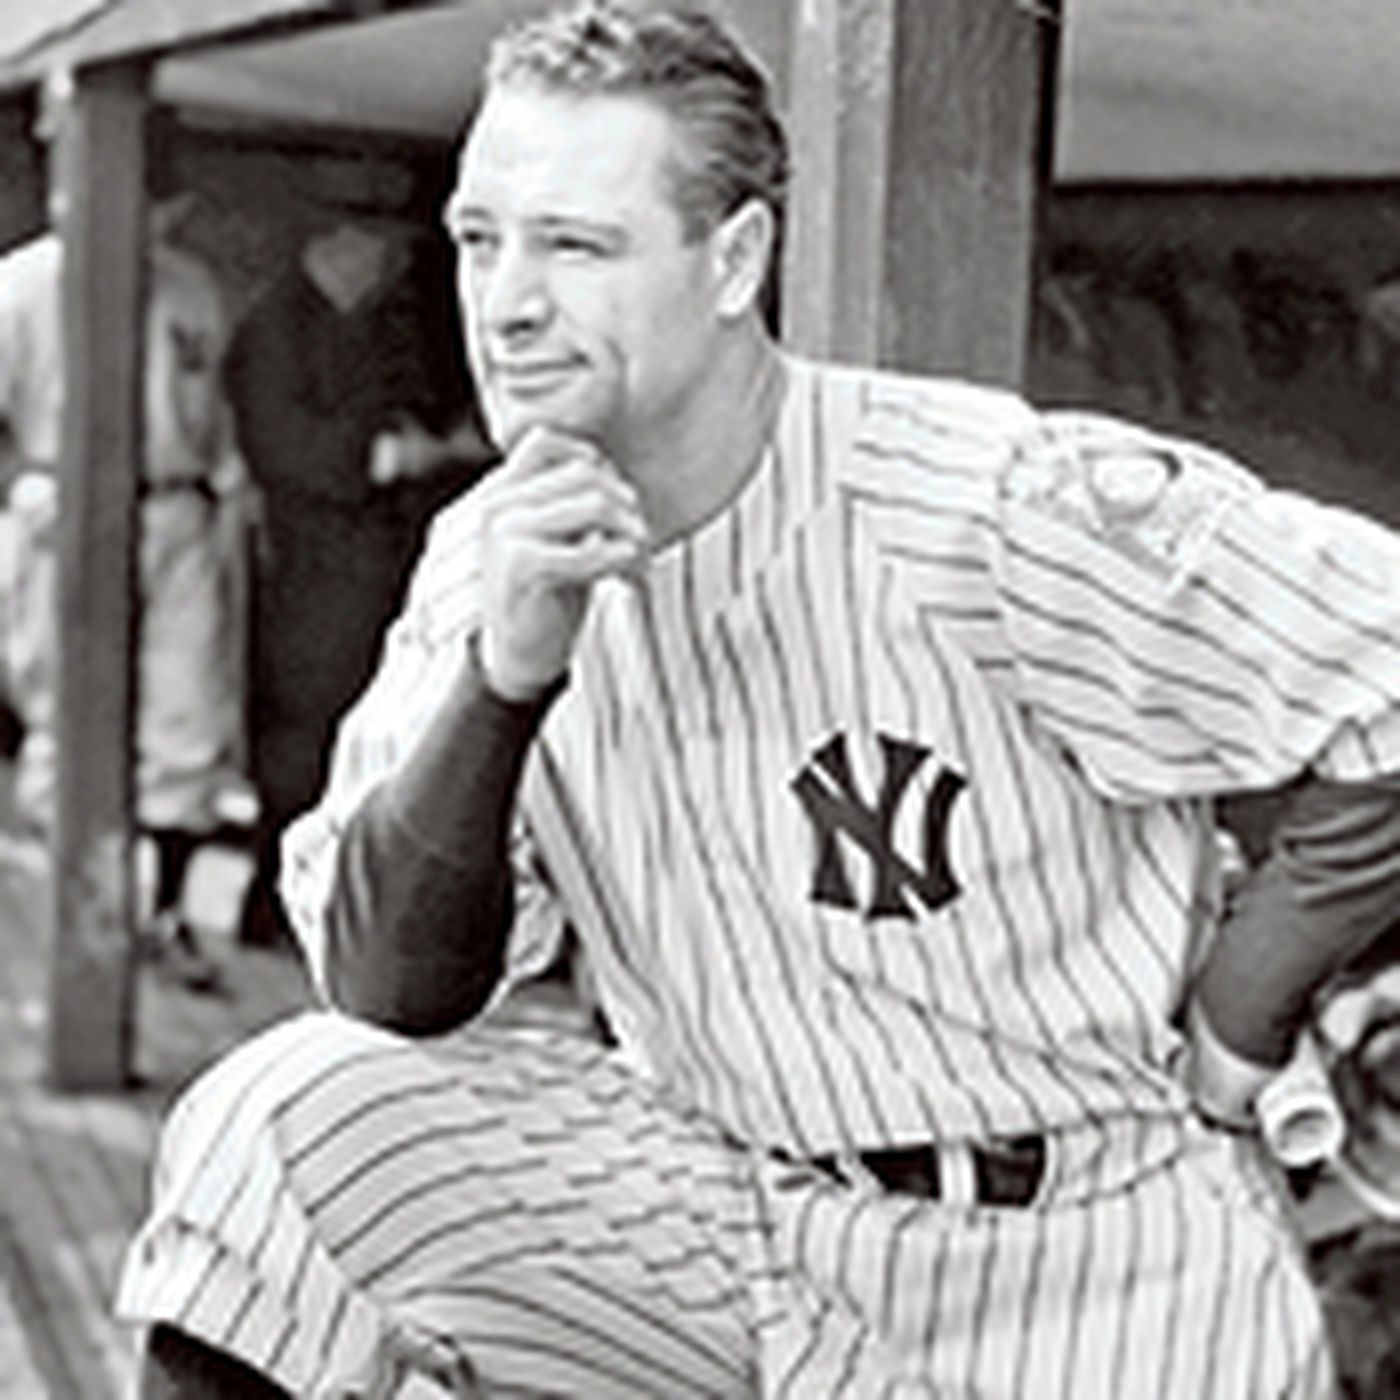 Lou Gehrig somehow salvaged his record streak on this day in 1934 ...